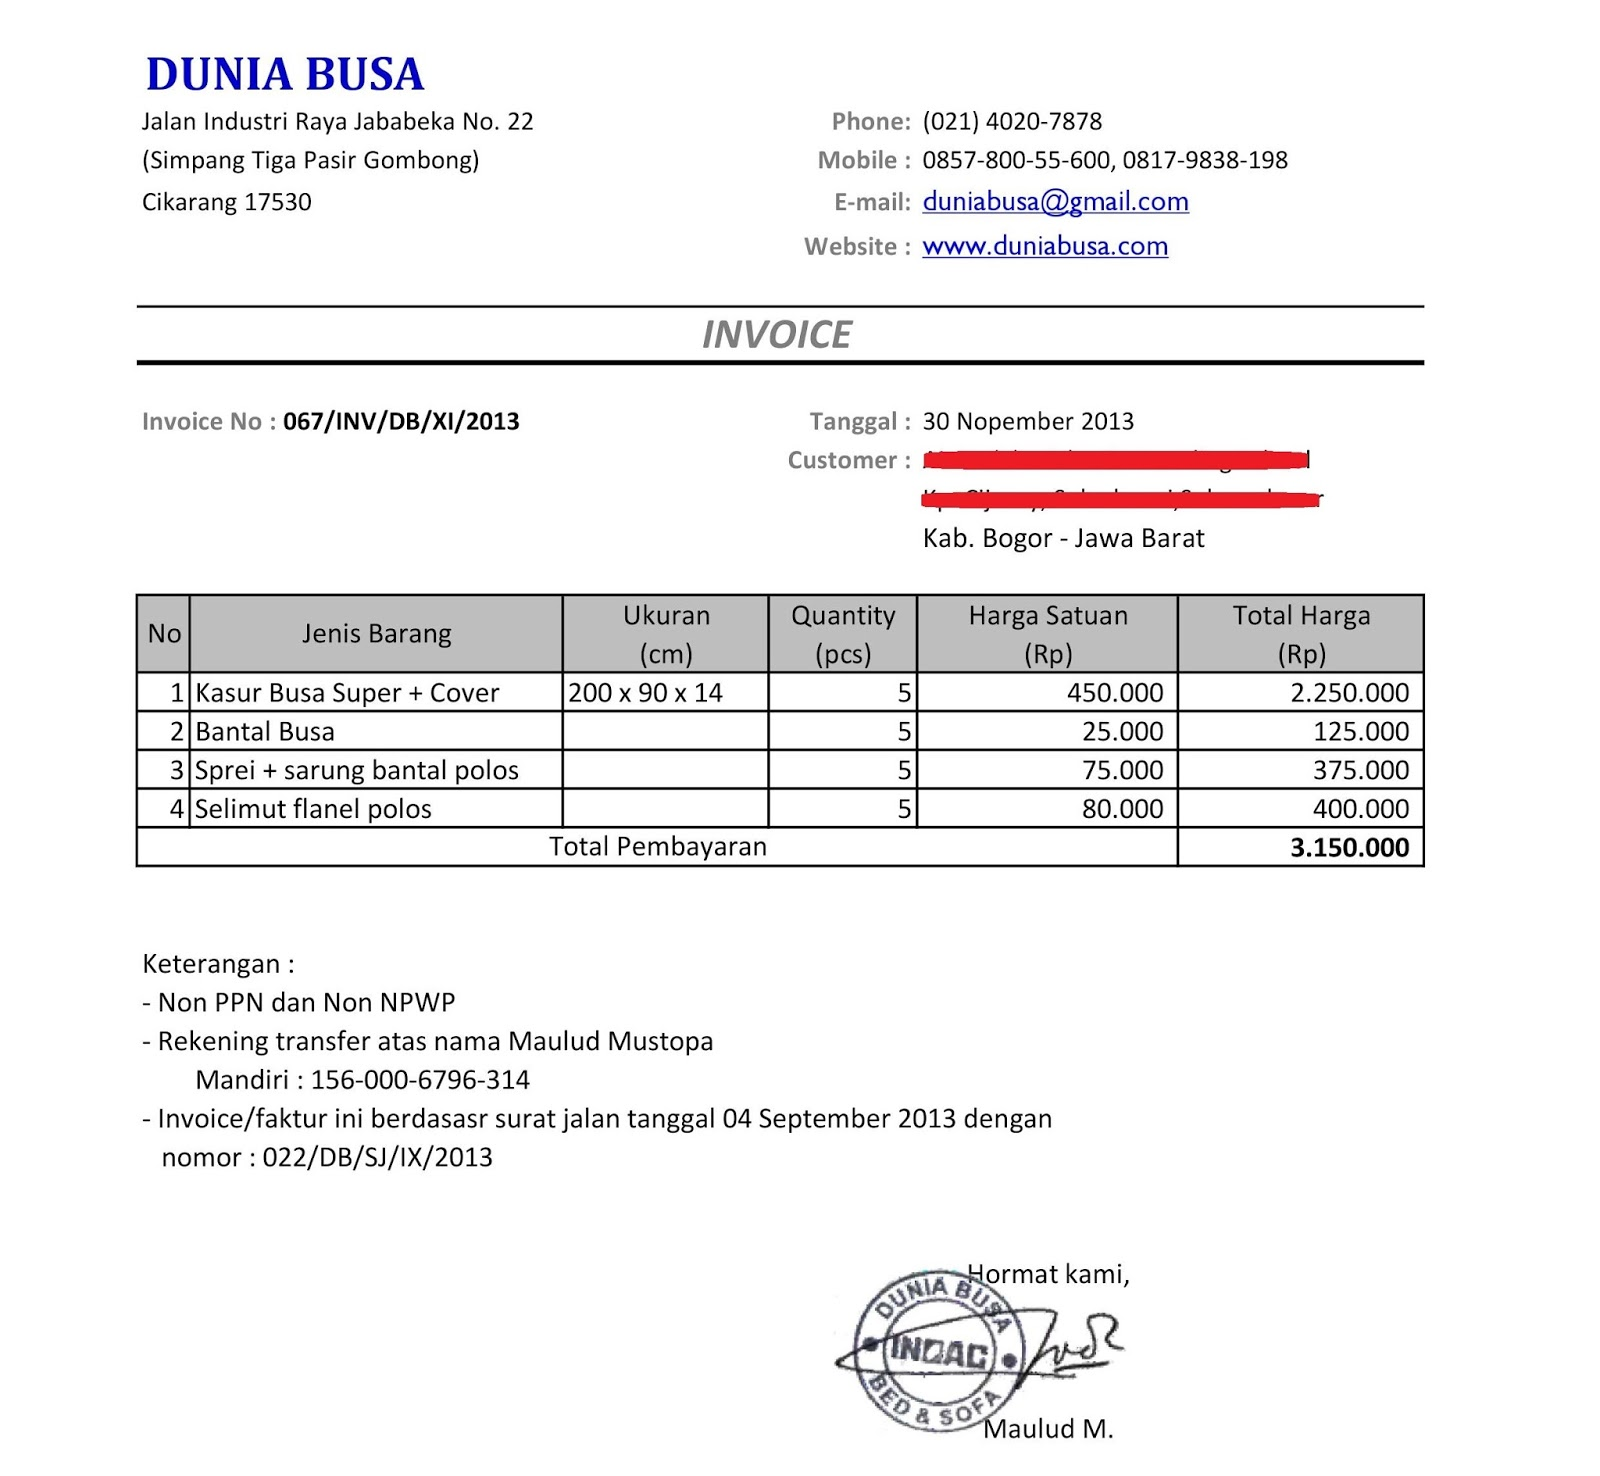 Theologygeekblogus  Pleasant Free Invoice Online  Create Invoice Online  Invoice Template  With Engaging Contoh Format Invoice Atau Surat Tagihan  Brankas Arsip  Free Invoice Online With Archaic Sample Of Commercial Invoice Also Create Free Invoice Template In Addition Professional Invoice Format And Receipts And Invoices As Well As Invoice Templa Additionally Builders Invoice Template From Sklepco With Theologygeekblogus  Engaging Free Invoice Online  Create Invoice Online  Invoice Template  With Archaic Contoh Format Invoice Atau Surat Tagihan  Brankas Arsip  Free Invoice Online And Pleasant Sample Of Commercial Invoice Also Create Free Invoice Template In Addition Professional Invoice Format From Sklepco